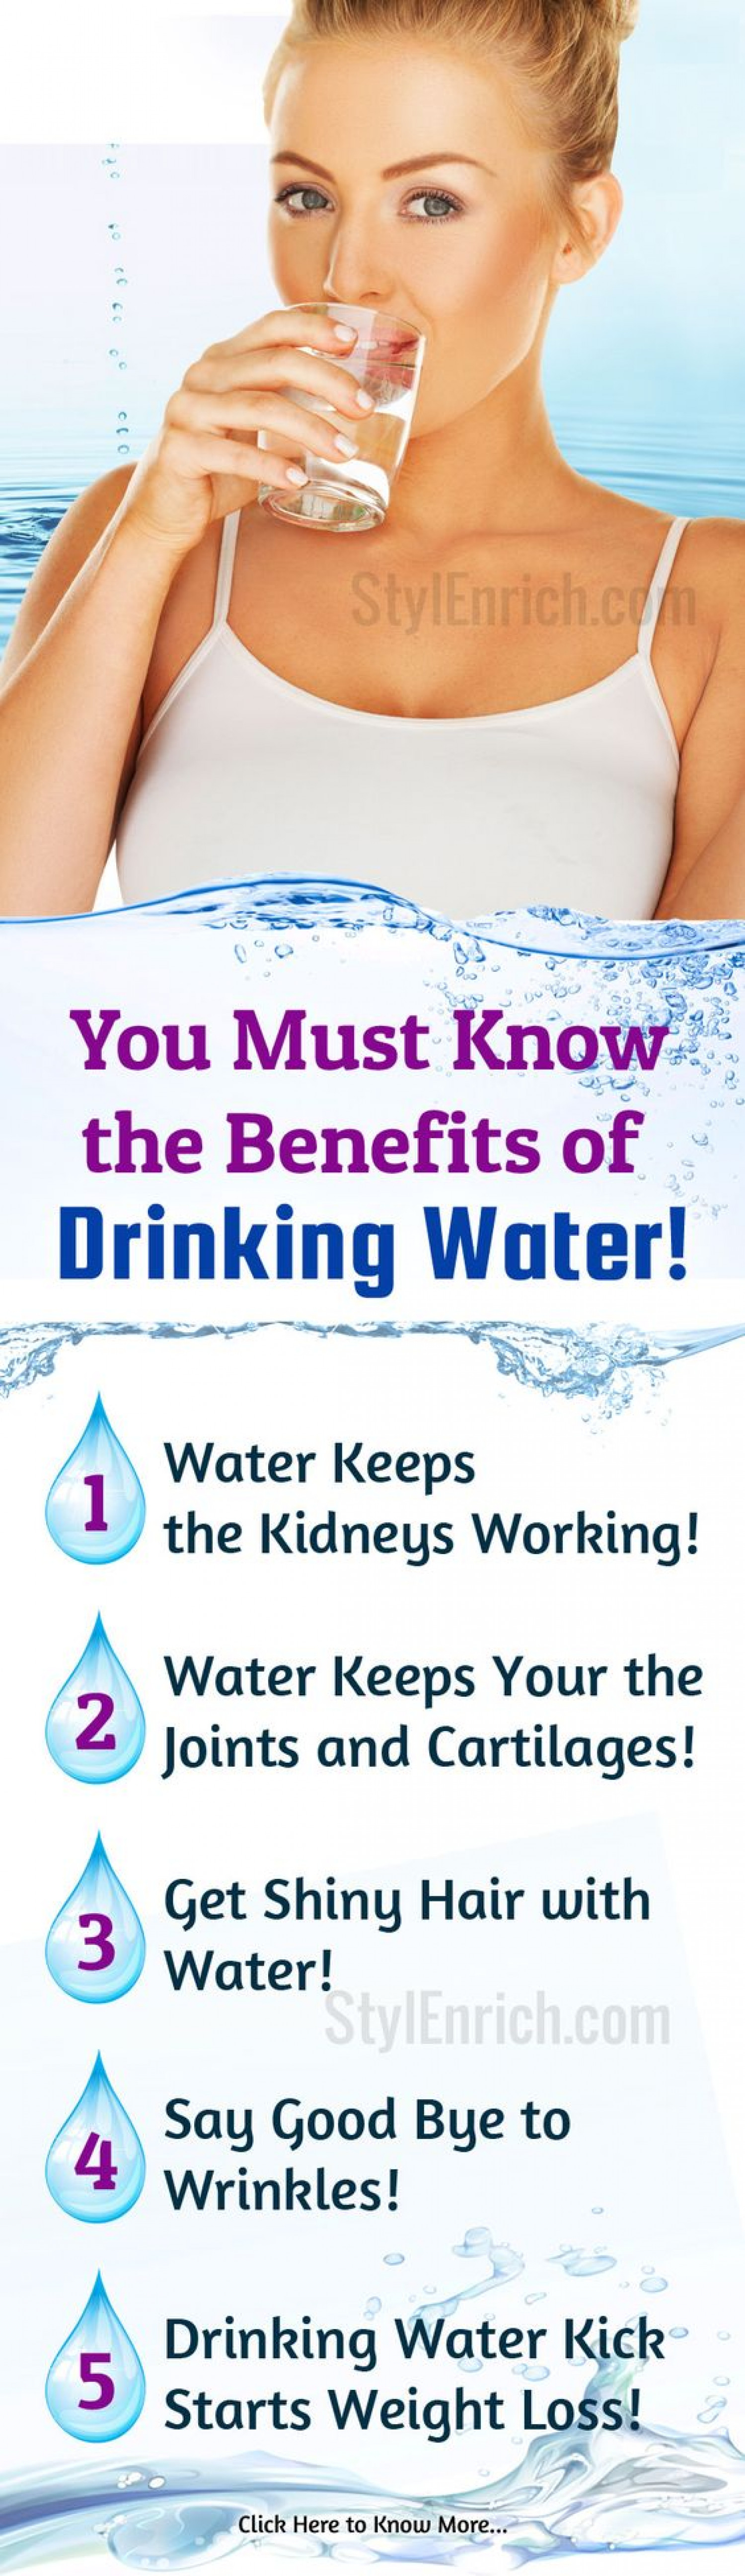 Advantages of Drinking Water Infographic